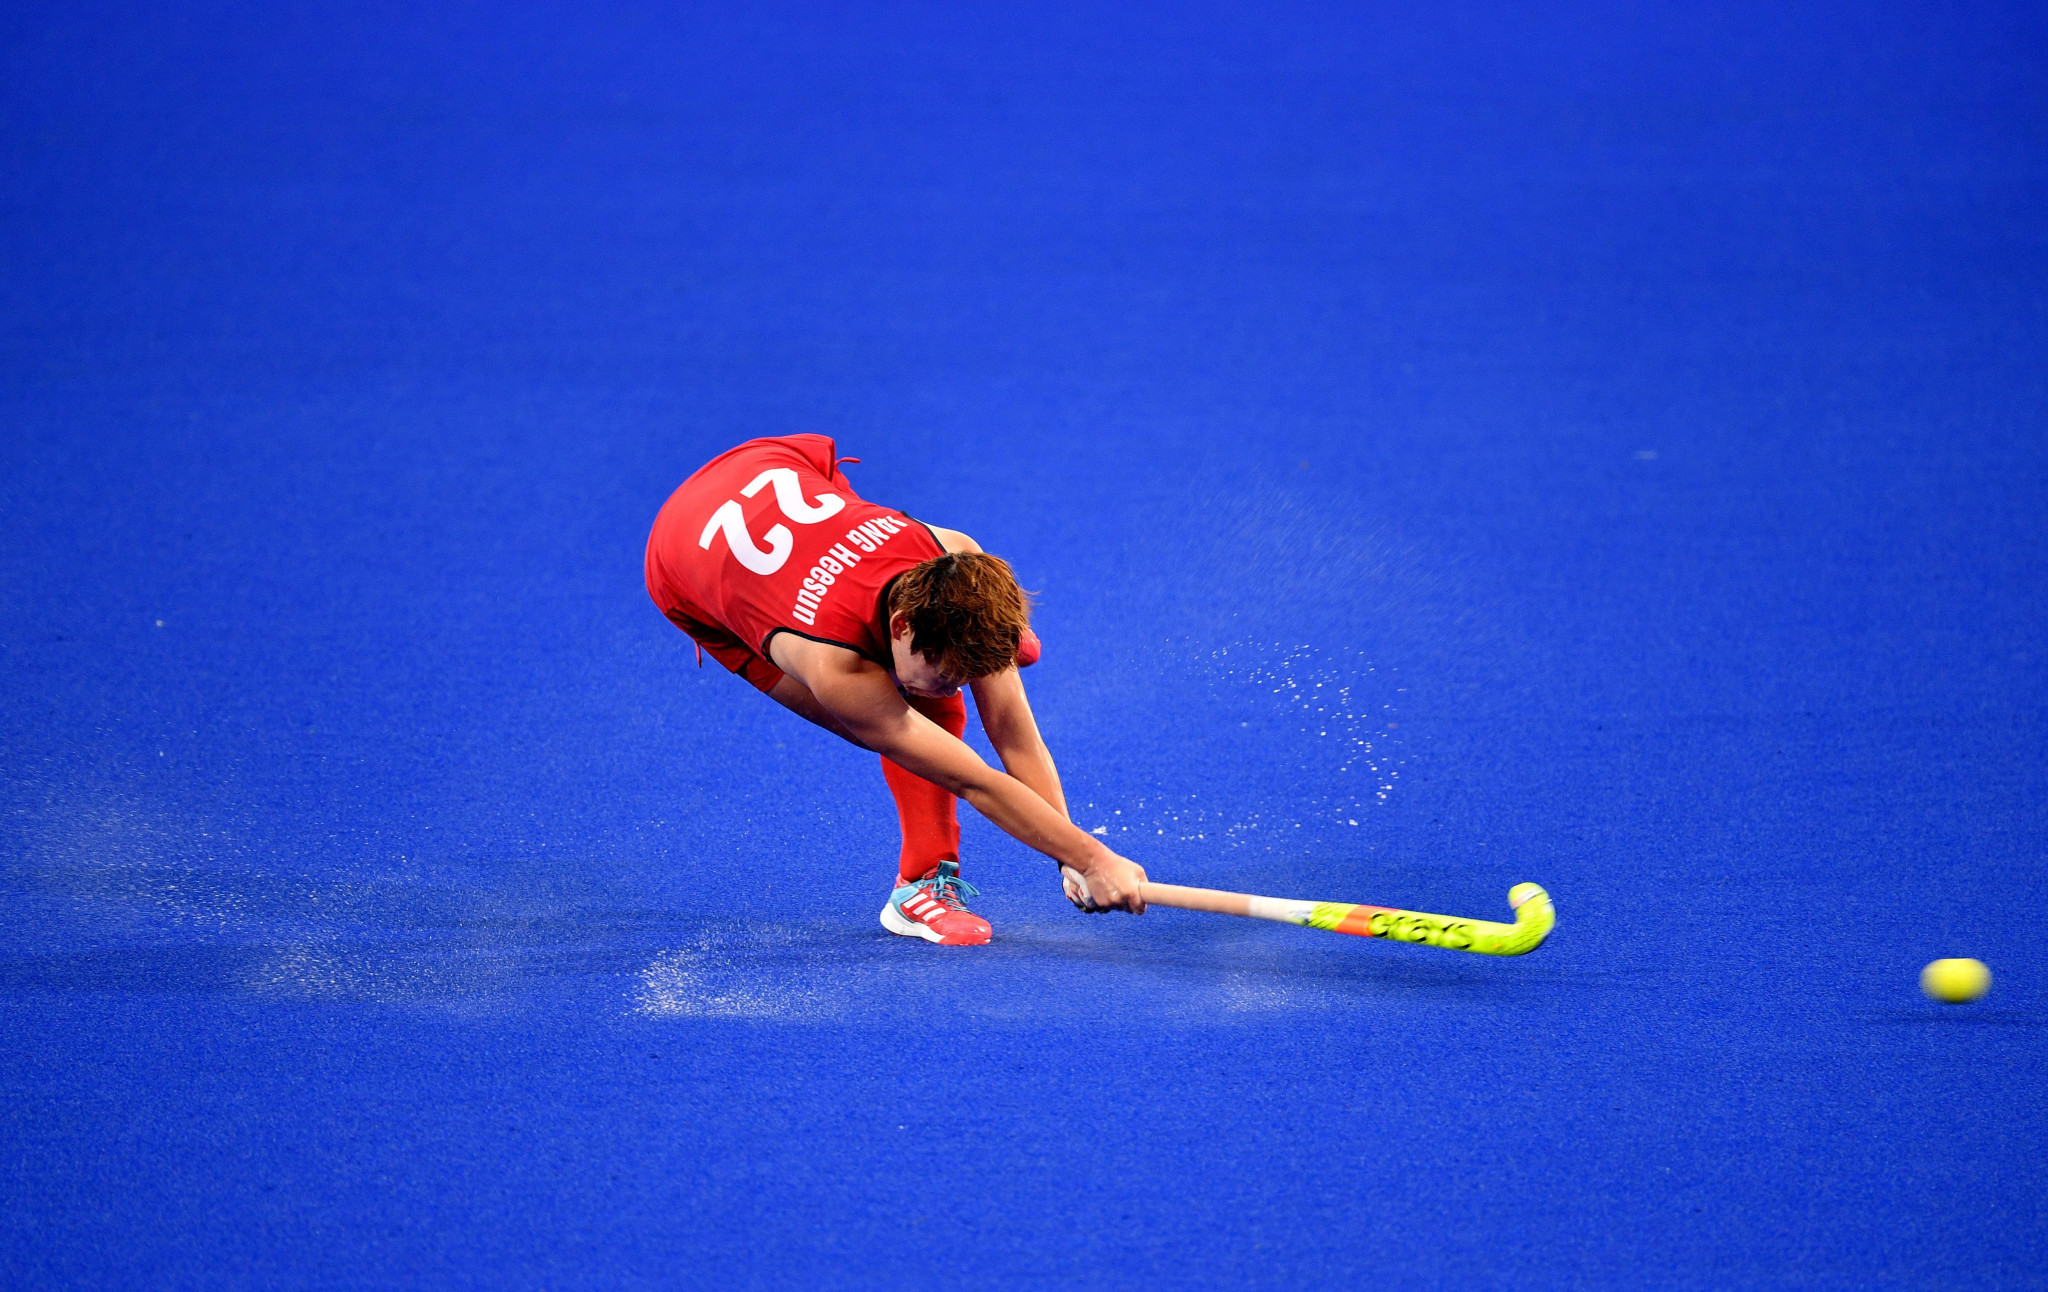 South Korea are the second-highest ranked team at the FIH Series Finals event in Ireland ©Getty Images